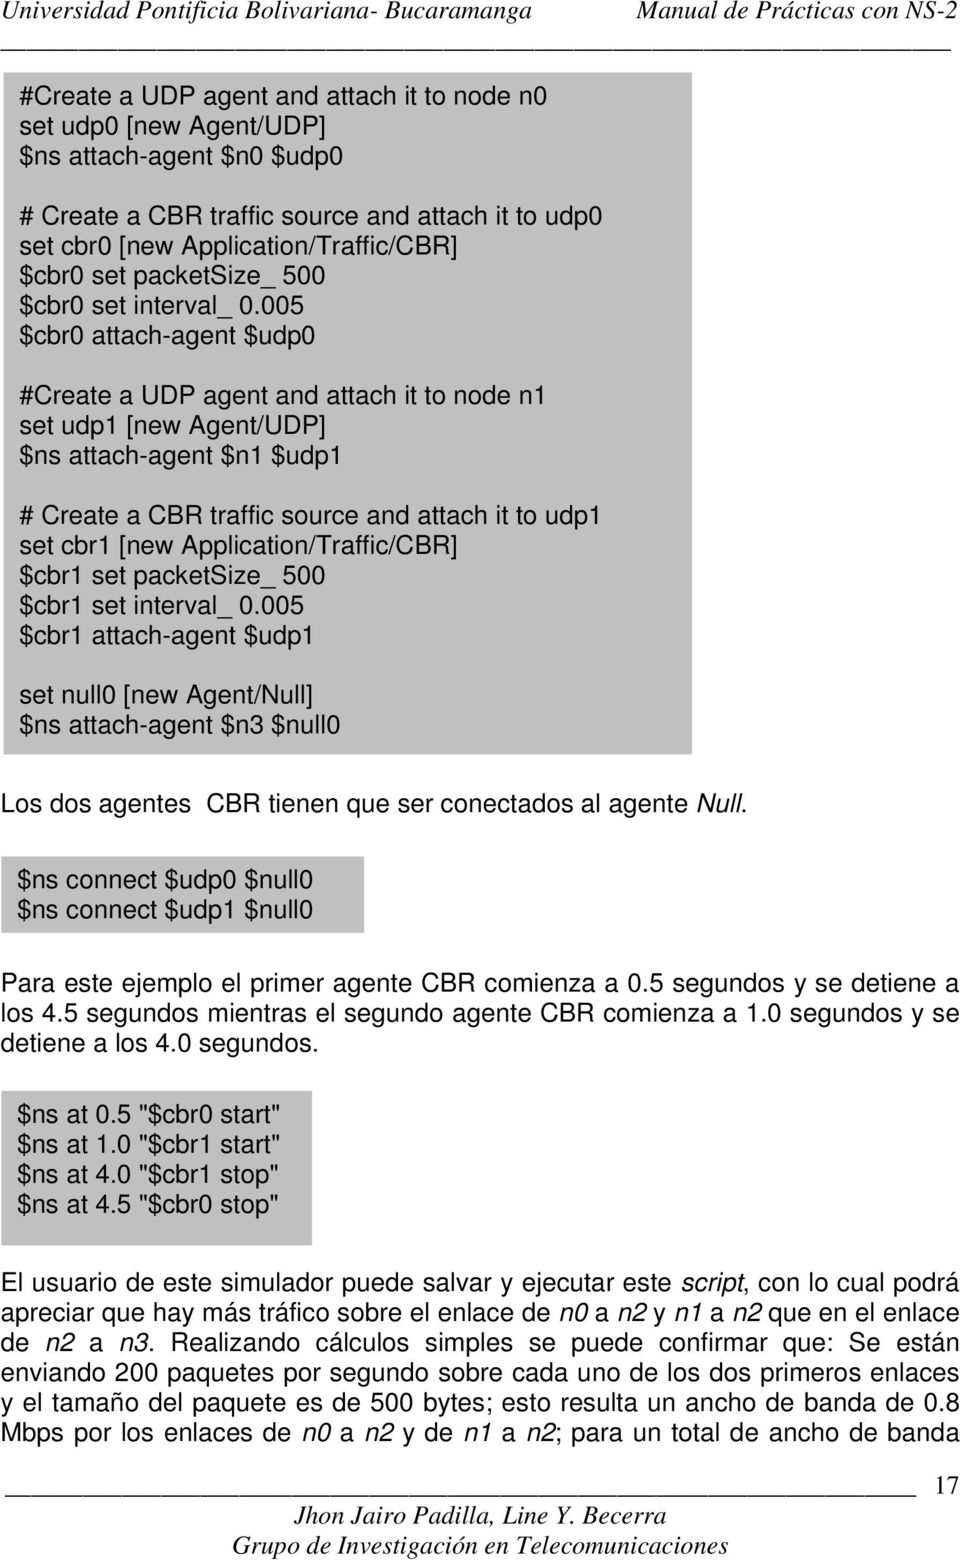 005 $cbr0 attach-agent $udp0 #Create a UDP agent and attach it to node n1 set udp1 [new Agent/UDP] $ns attach-agent $n1 $udp1 # Create a CBR traffic source and attach it to udp1 set cbr1 [new